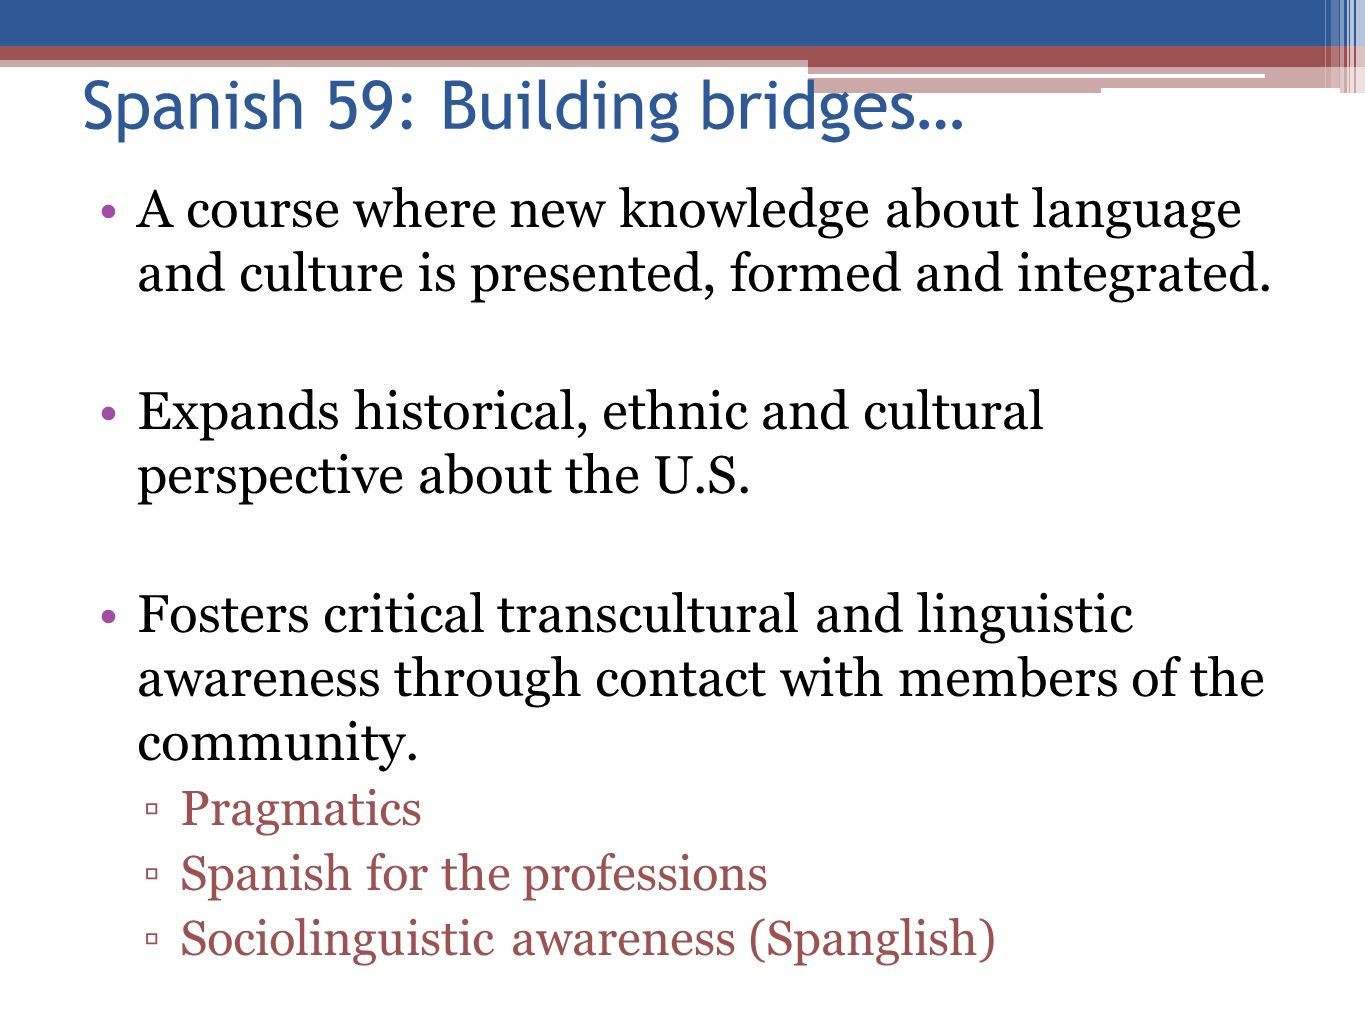 Spanish 59: Building bridges… A course where new knowledge about language and culture is presented, formed and integrated. Expands historical, ethnic